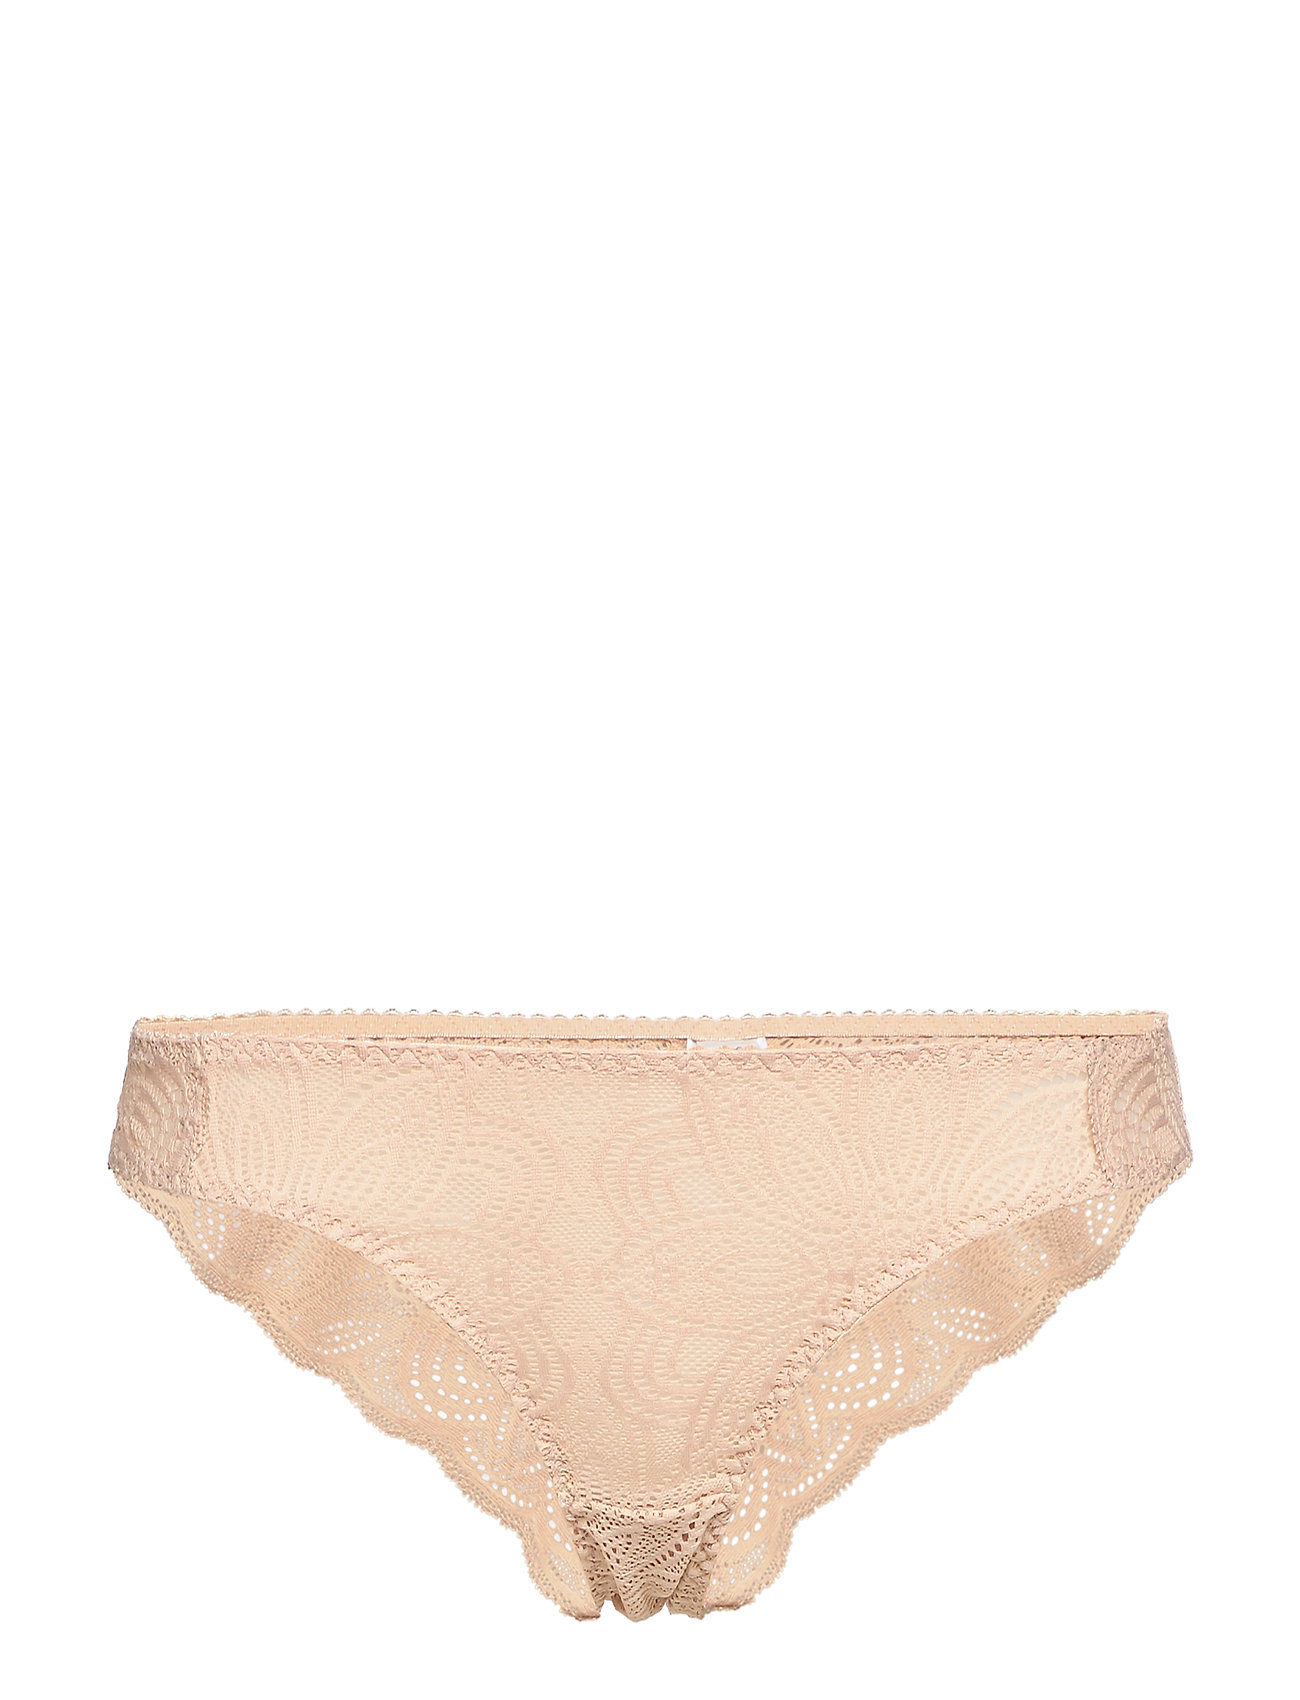 Underprotection luna briefs - NUDE